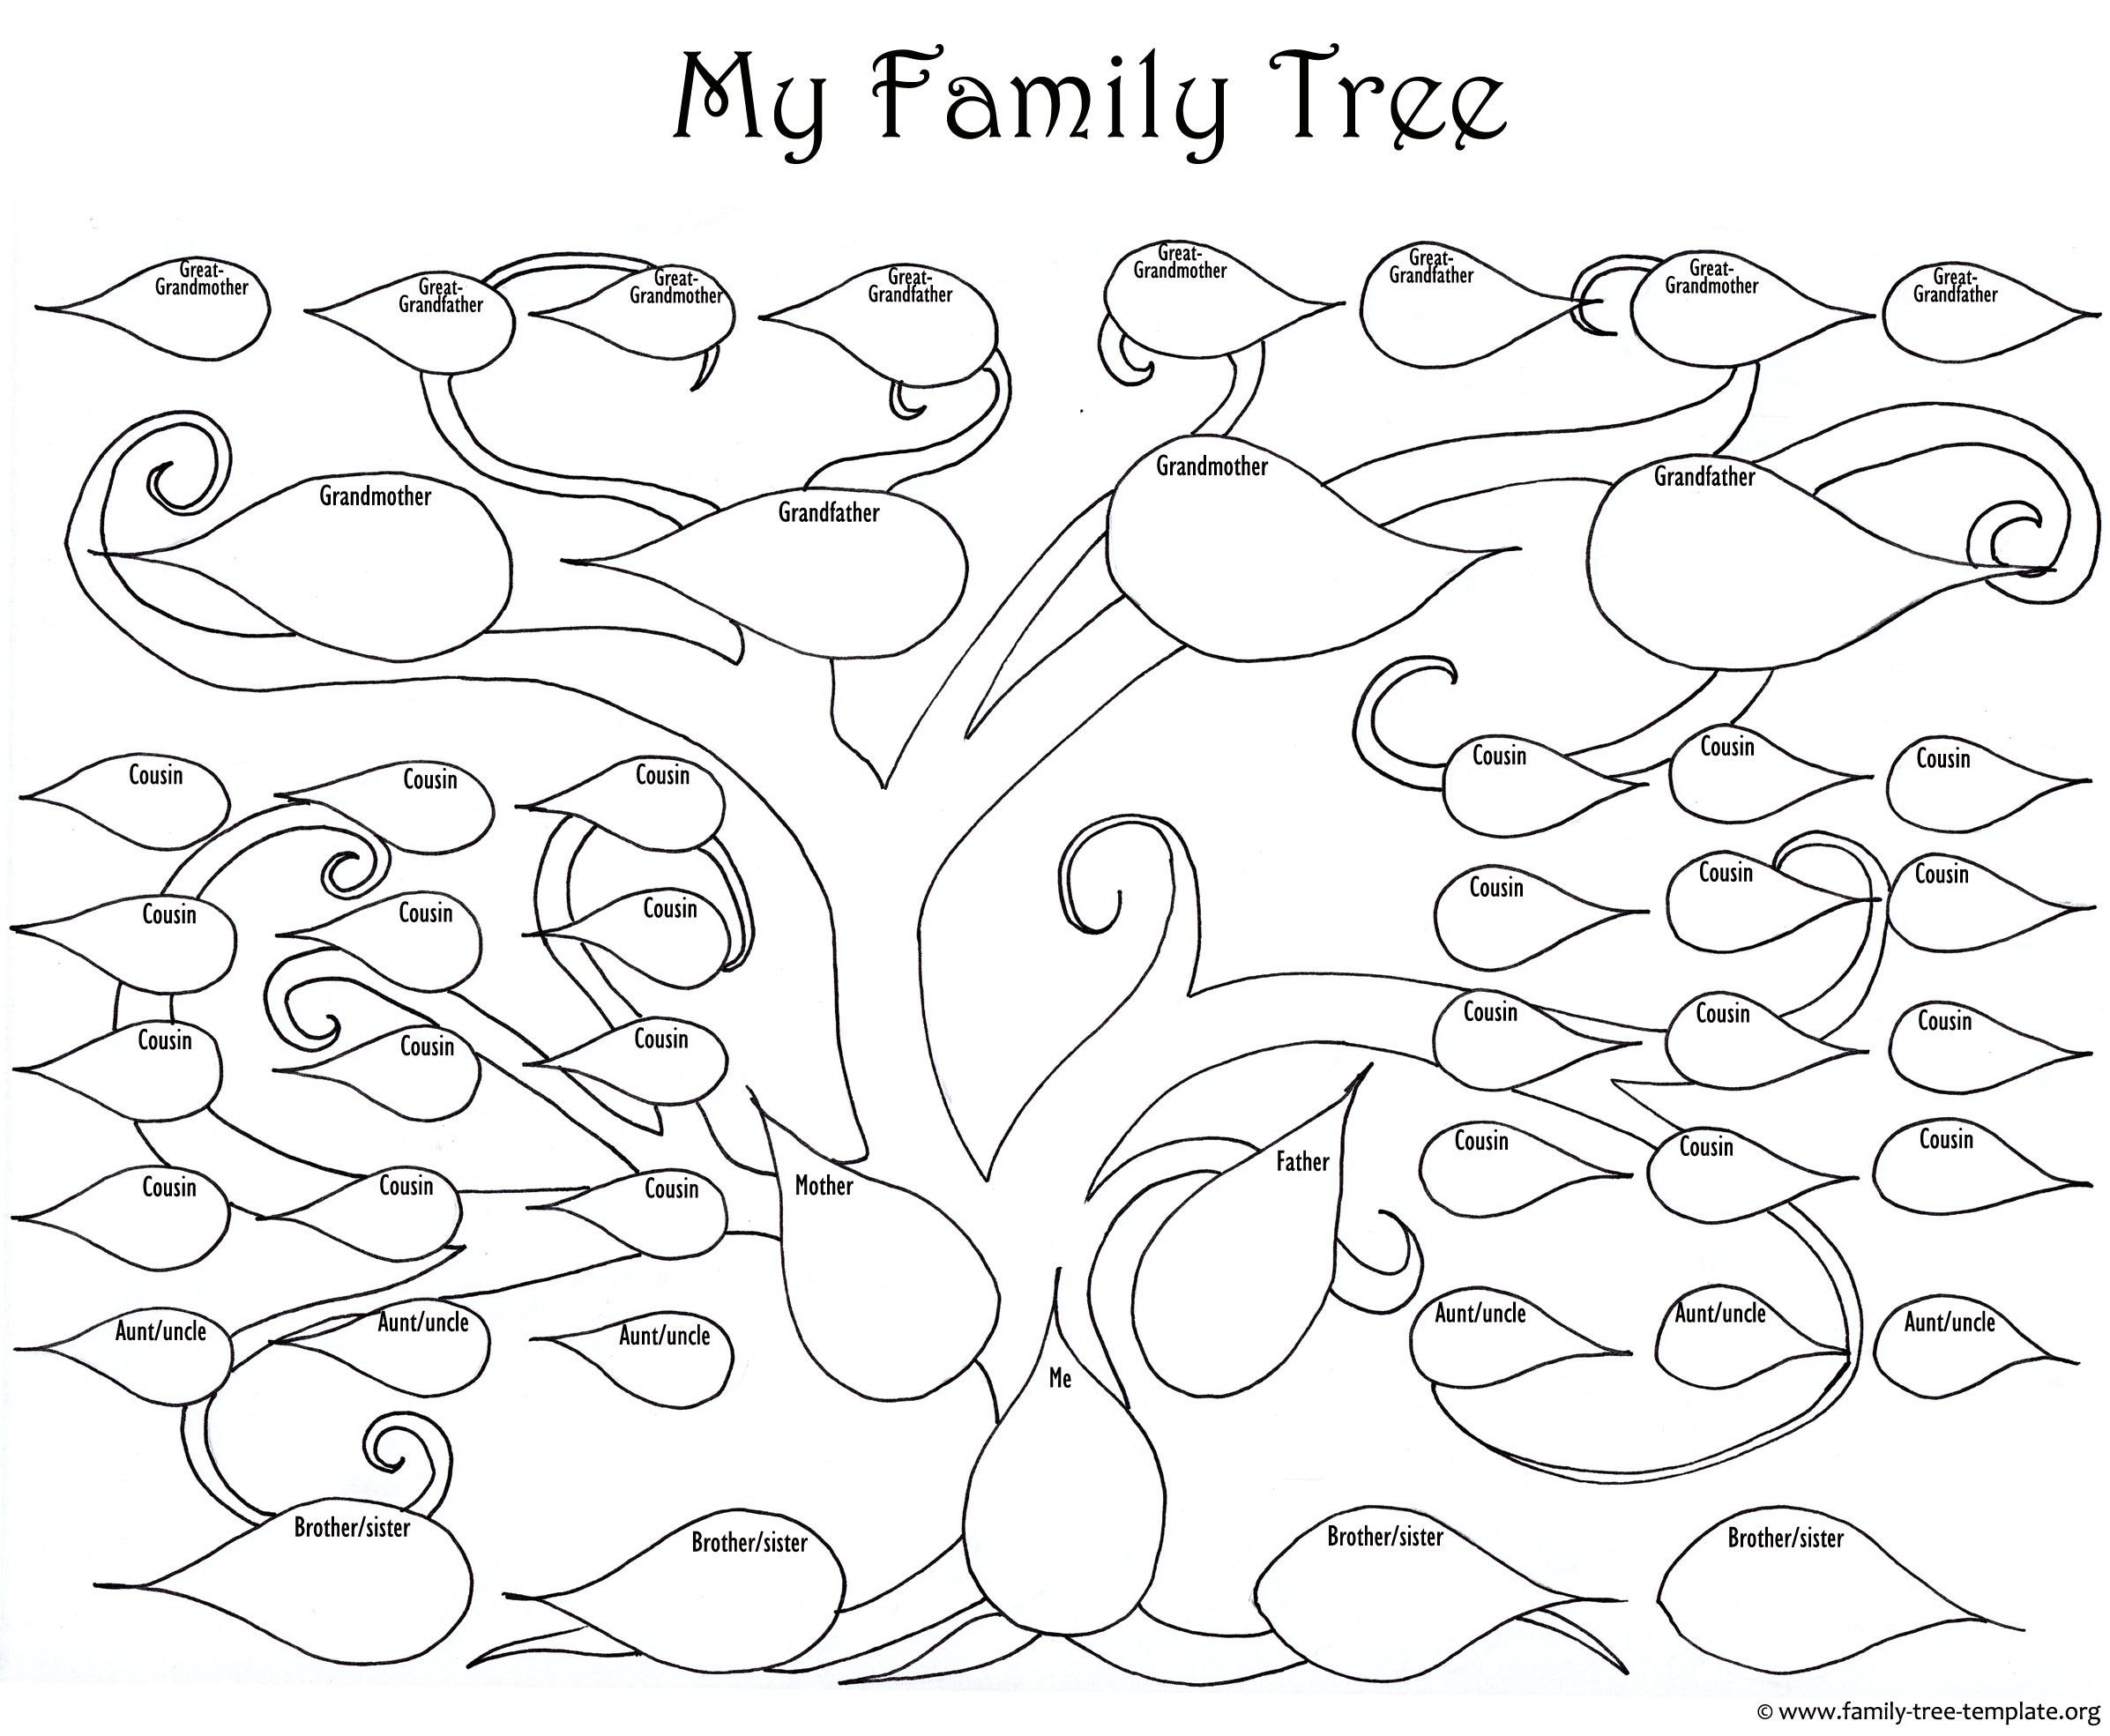 The large family tree chart for kids to print and color.